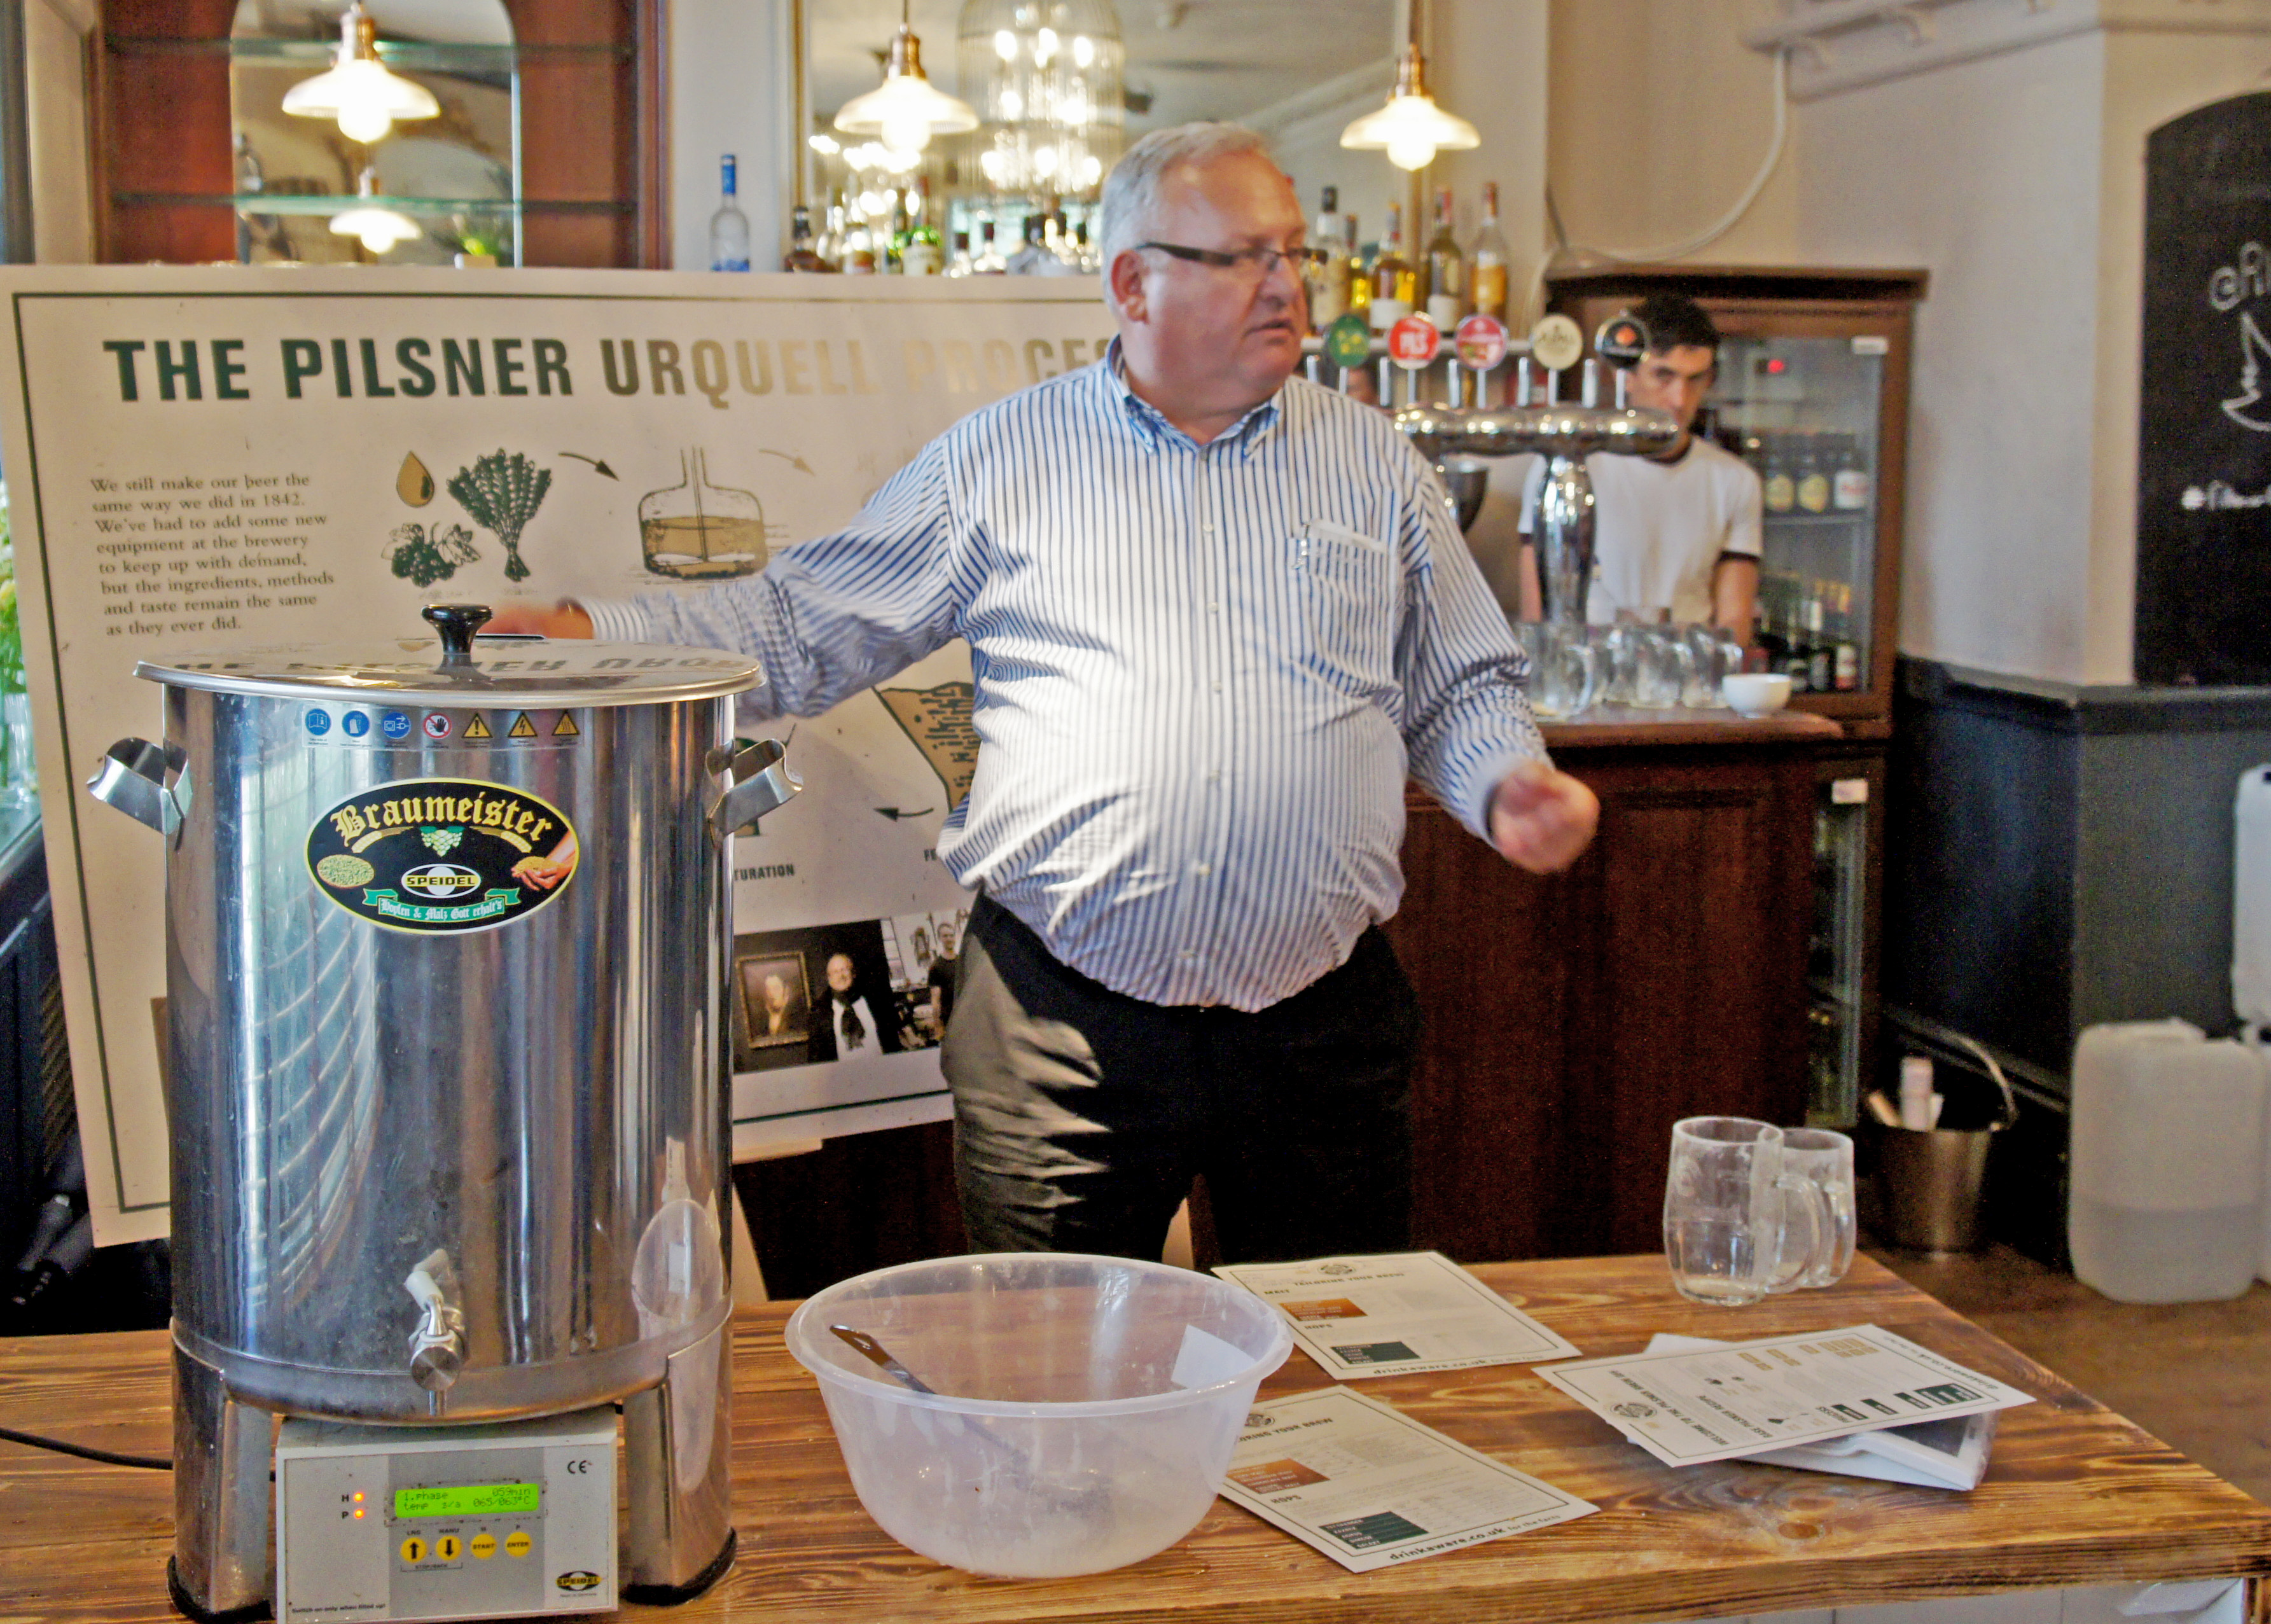 Václav Berka explains the secrets of brewing Pilsner Urquell in the upper room at the White Horse, Parsons Green